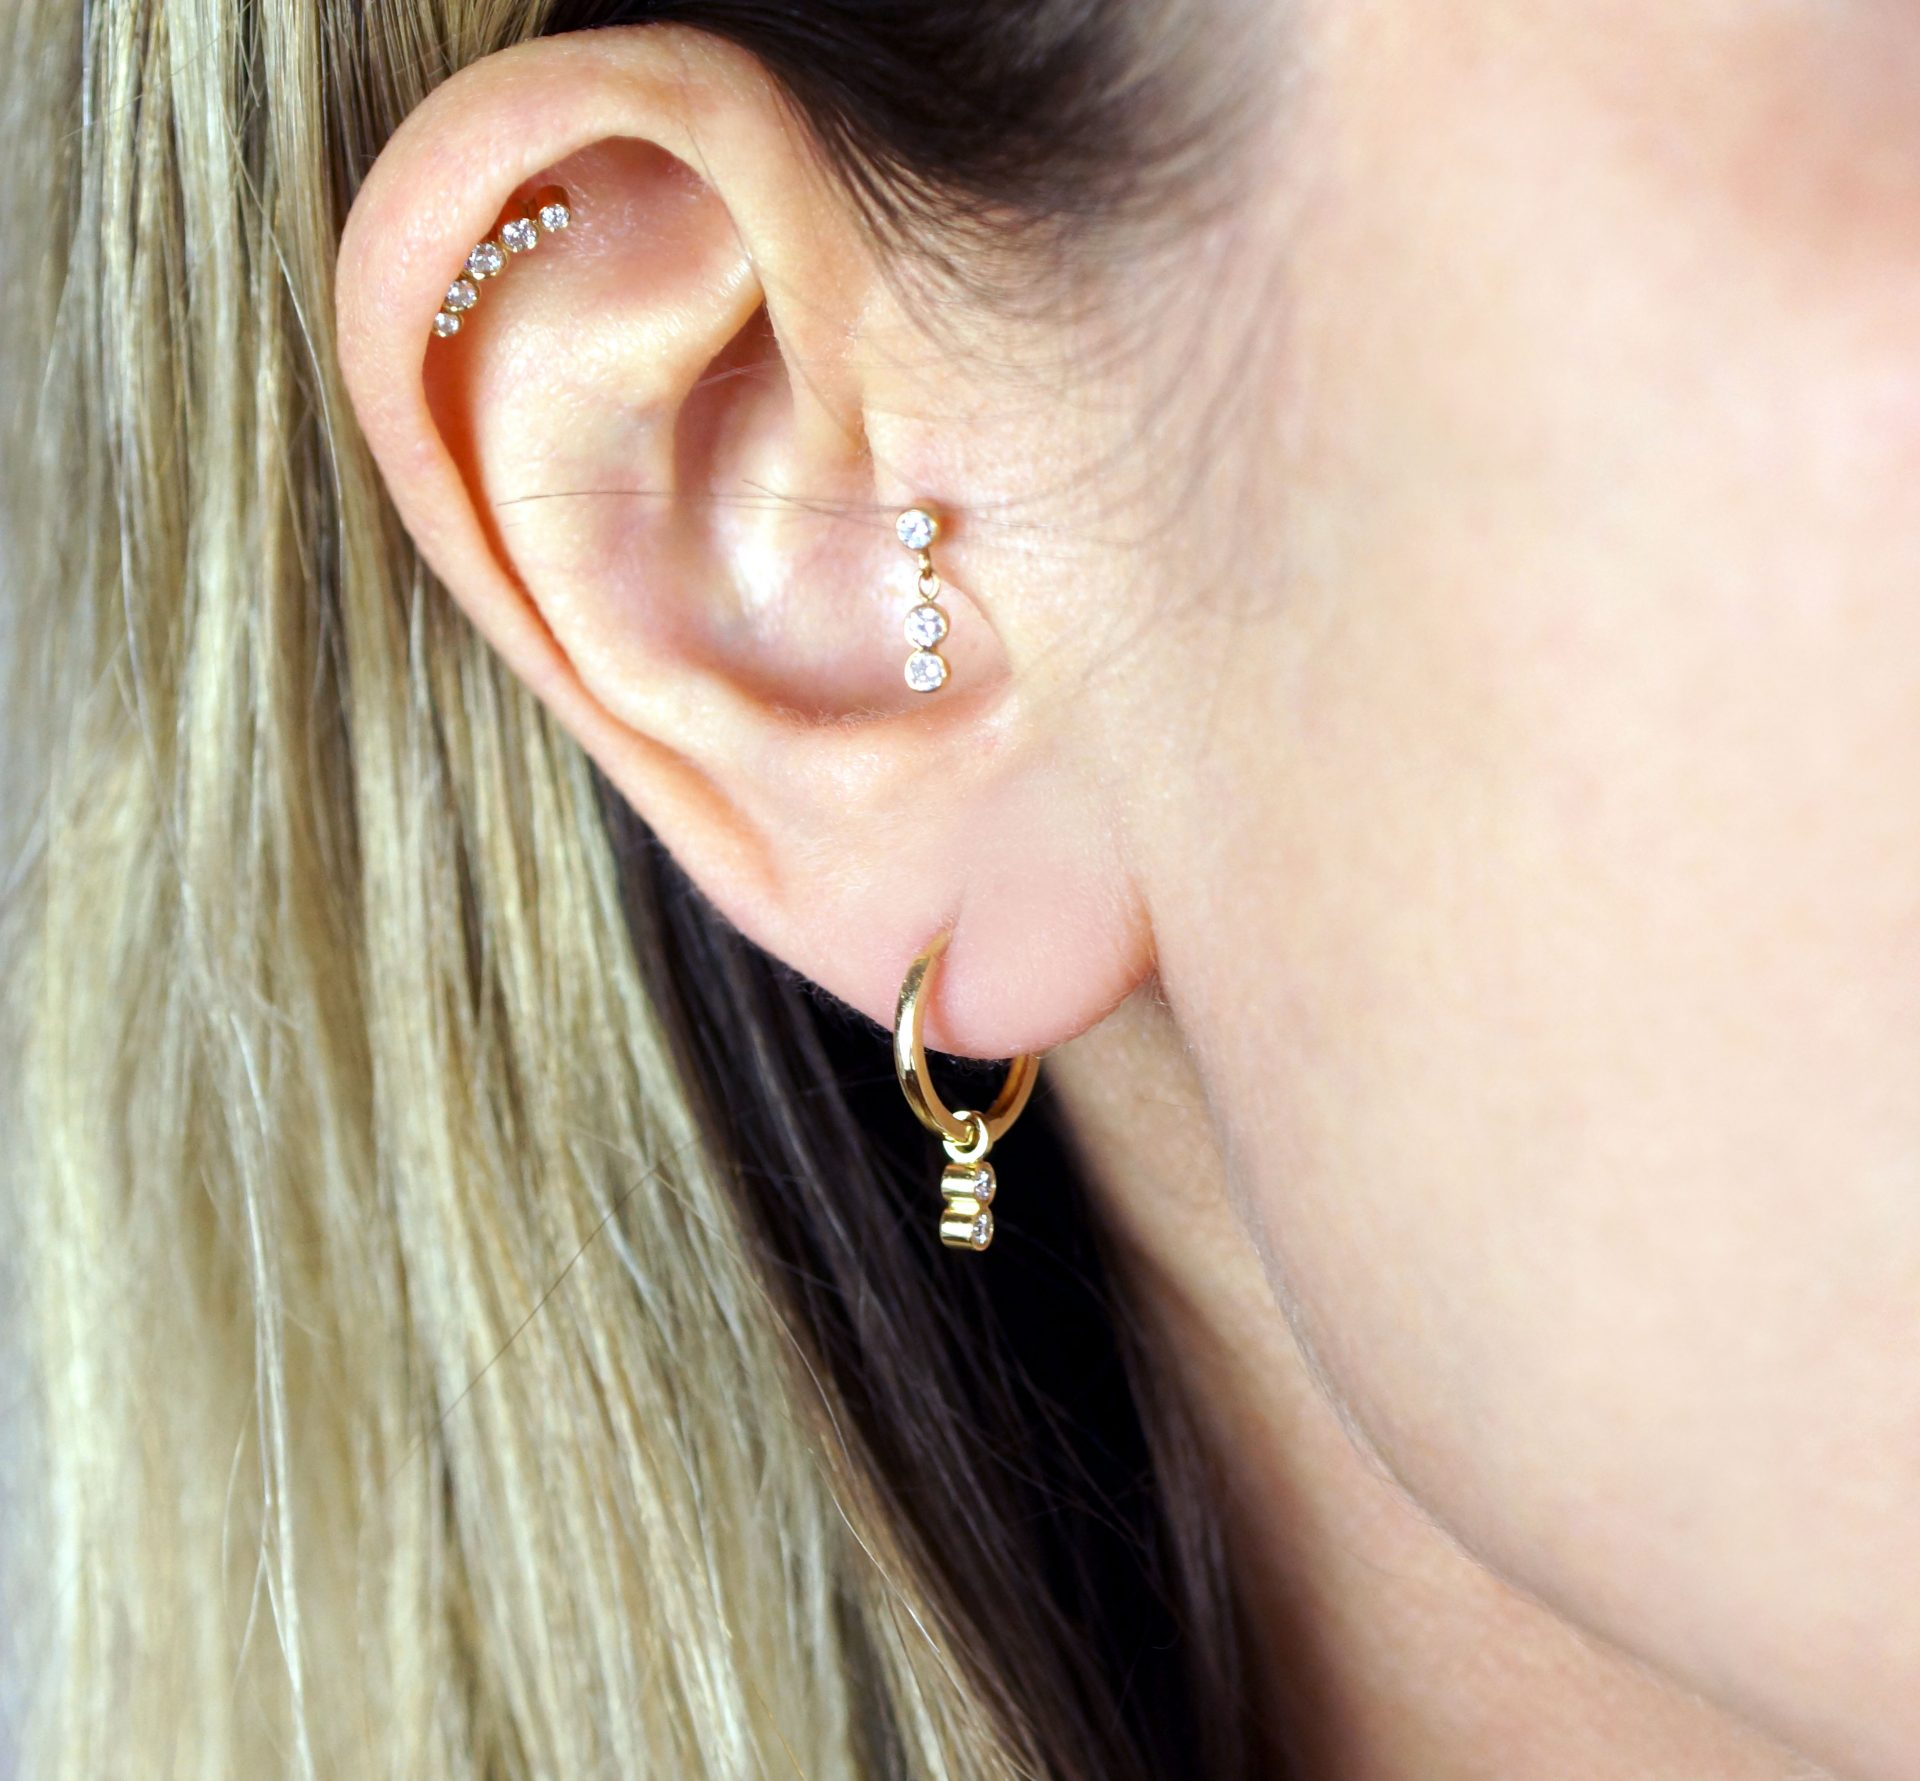 luxury piercing jewellery london uk lena cohen cartilage earrings trend